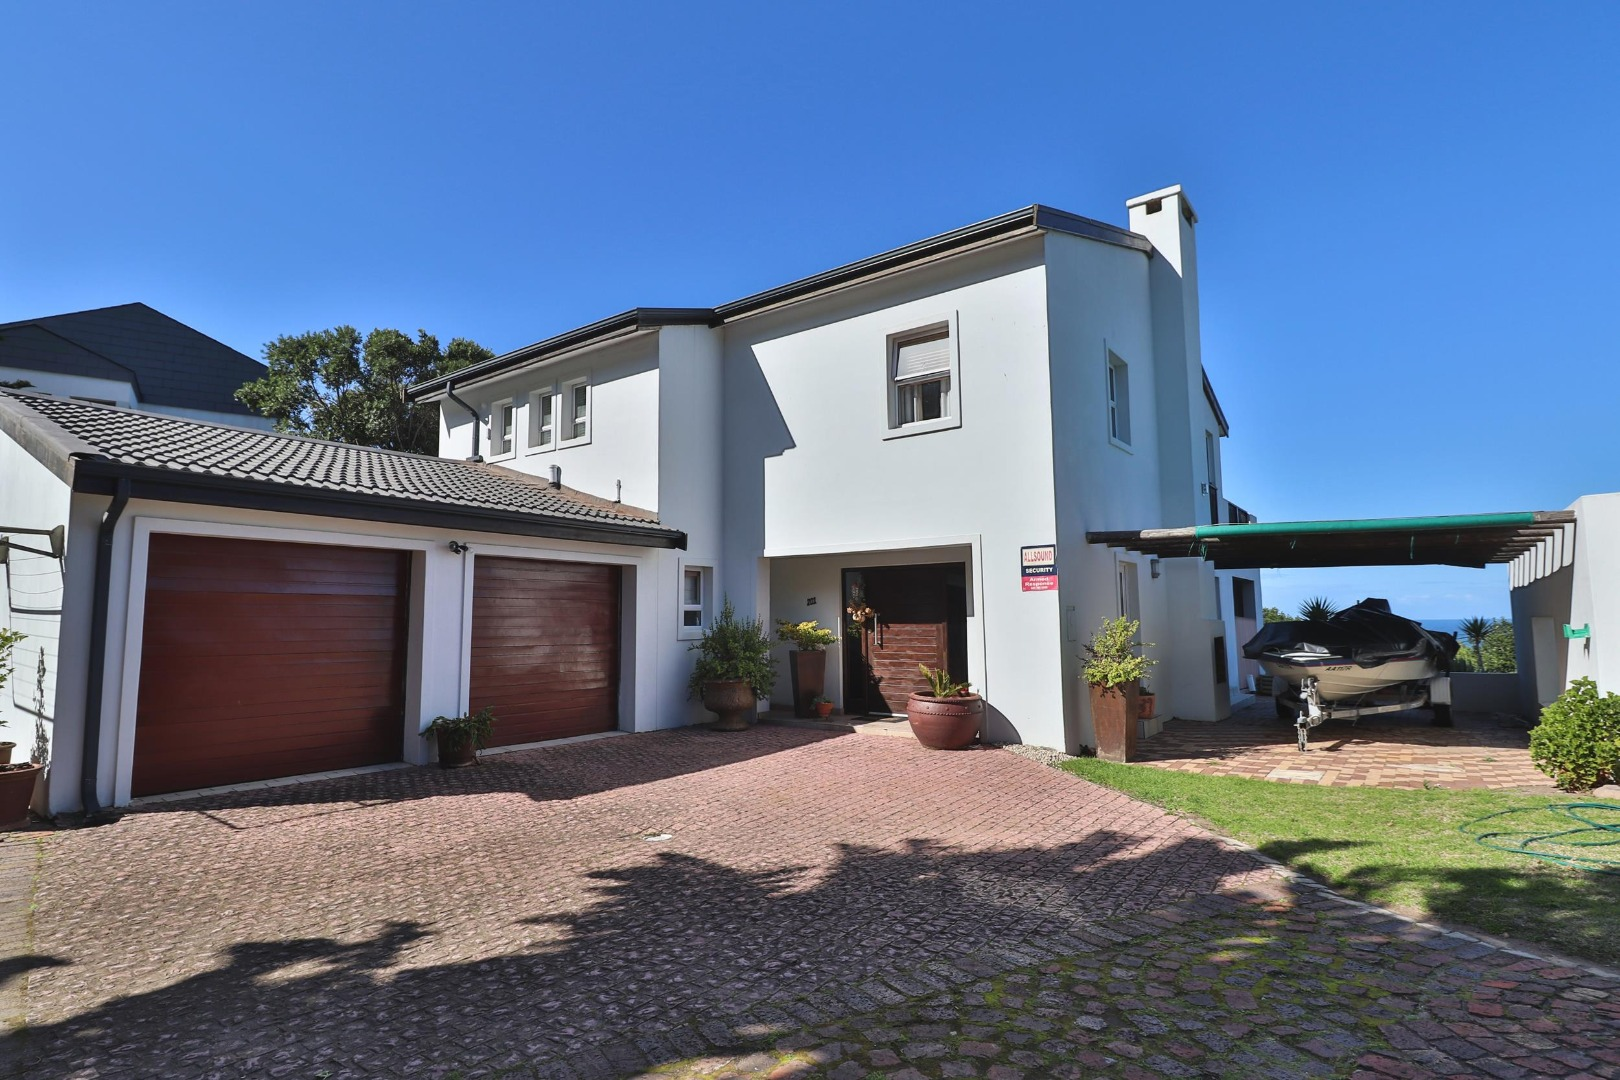 3 Bedroom House For Sale in Brenton On Sea